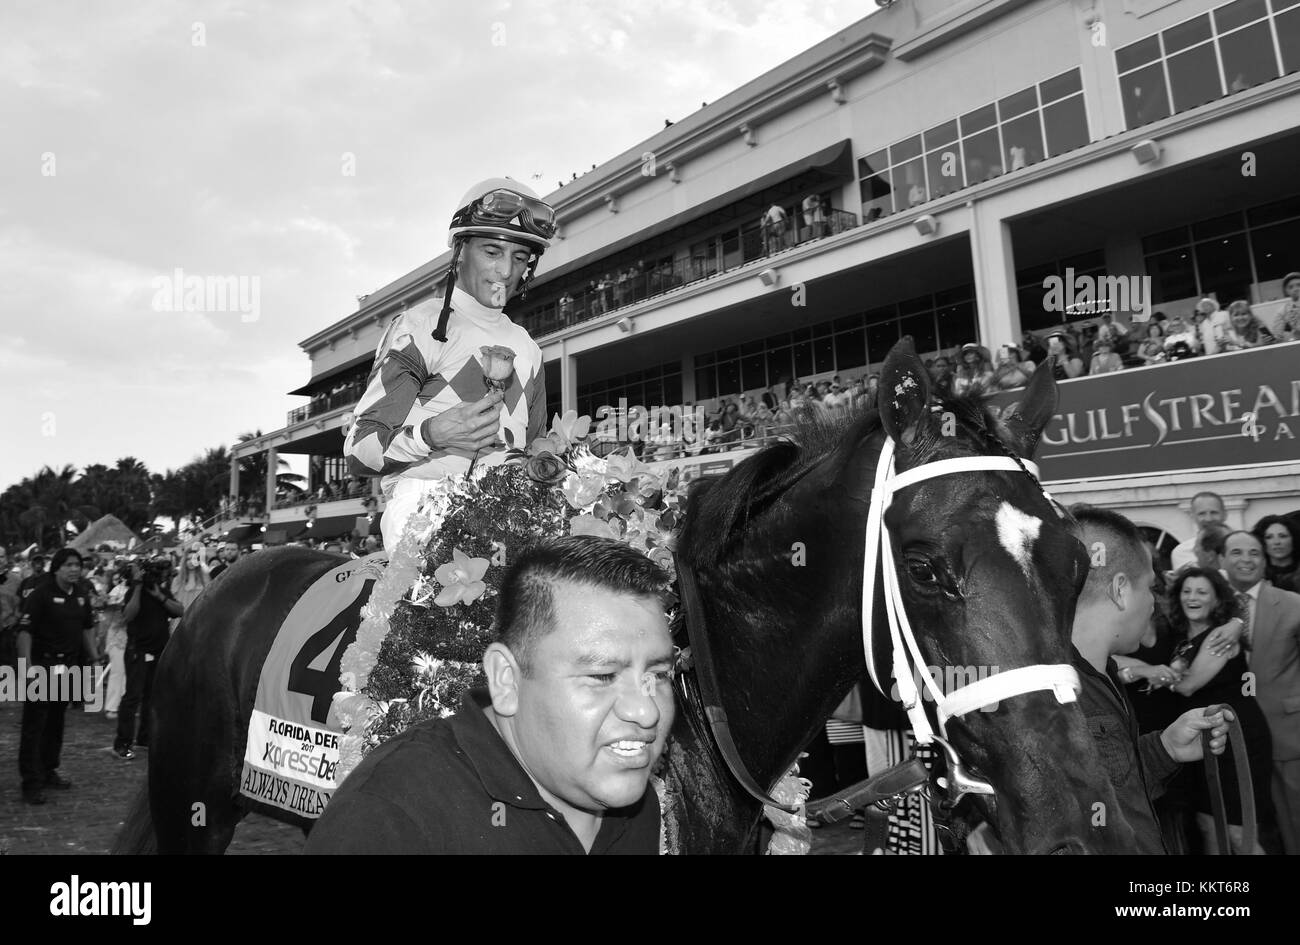 HALLANDALE, FL - APRIL 01: Always Dreaming (#4 ) gets a pat on the back before he crosses the finish line. Always - Stock Image